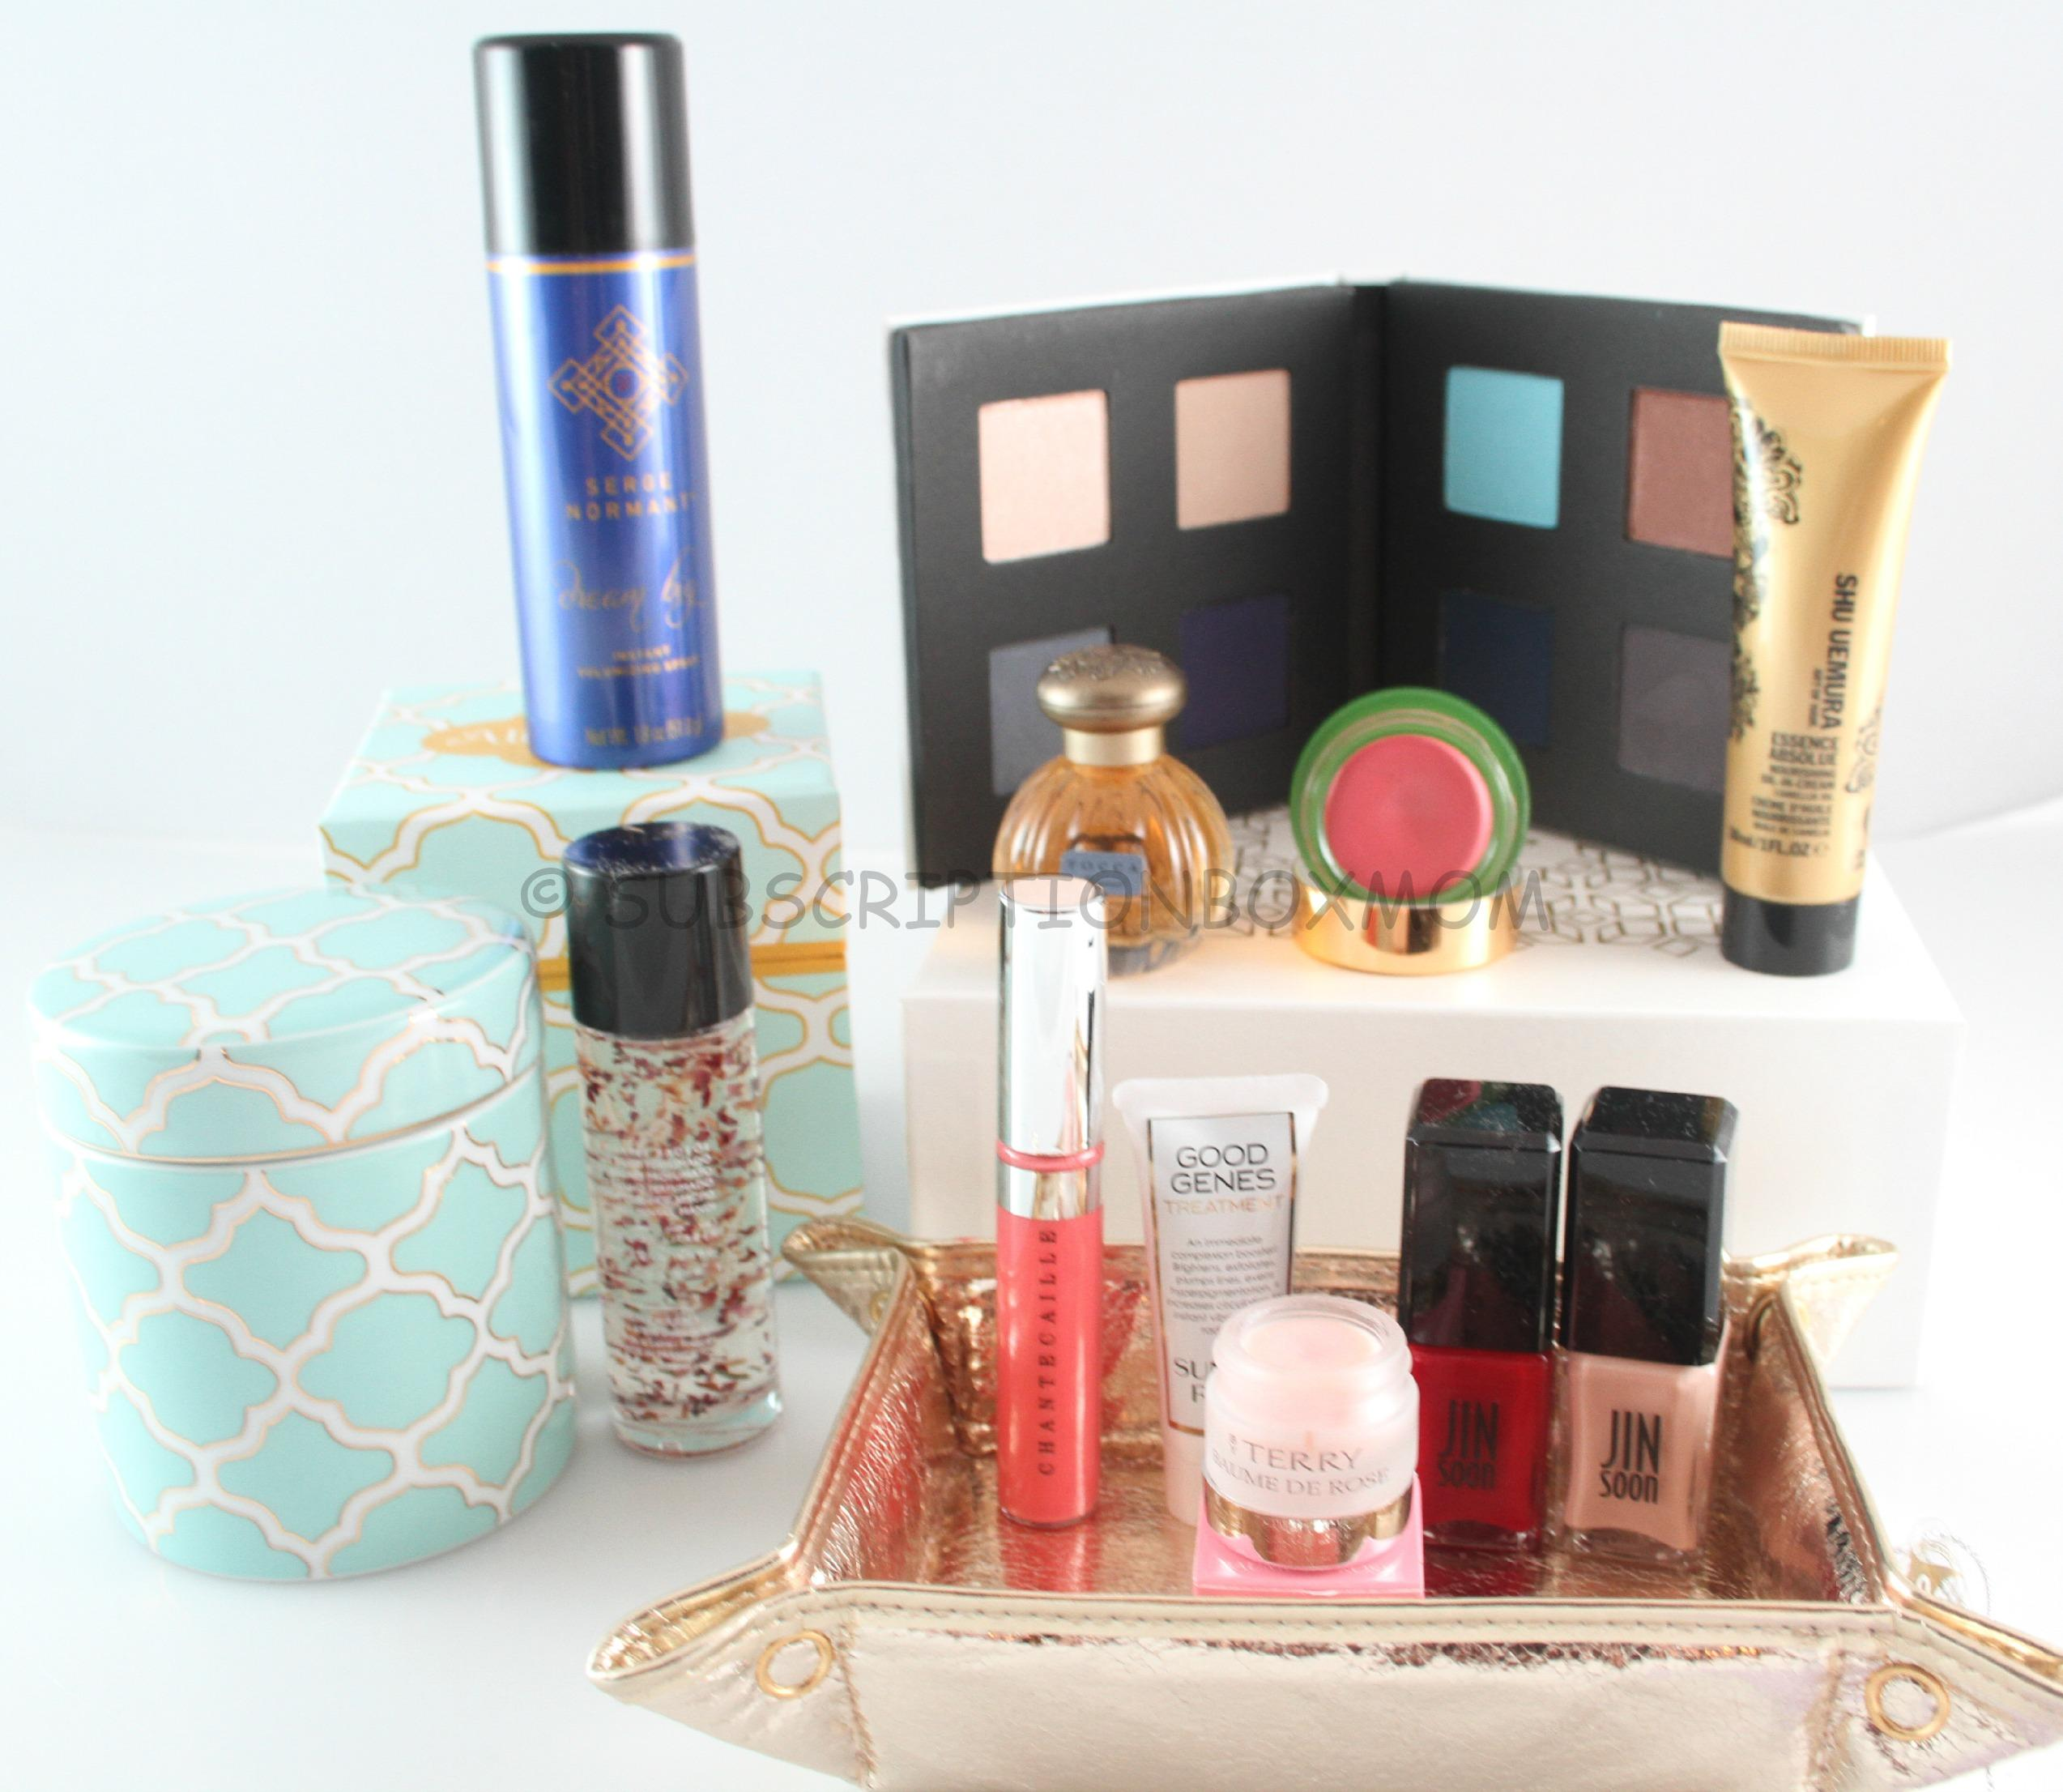 Birchbox Vanity Affair Limited Edition Box Review